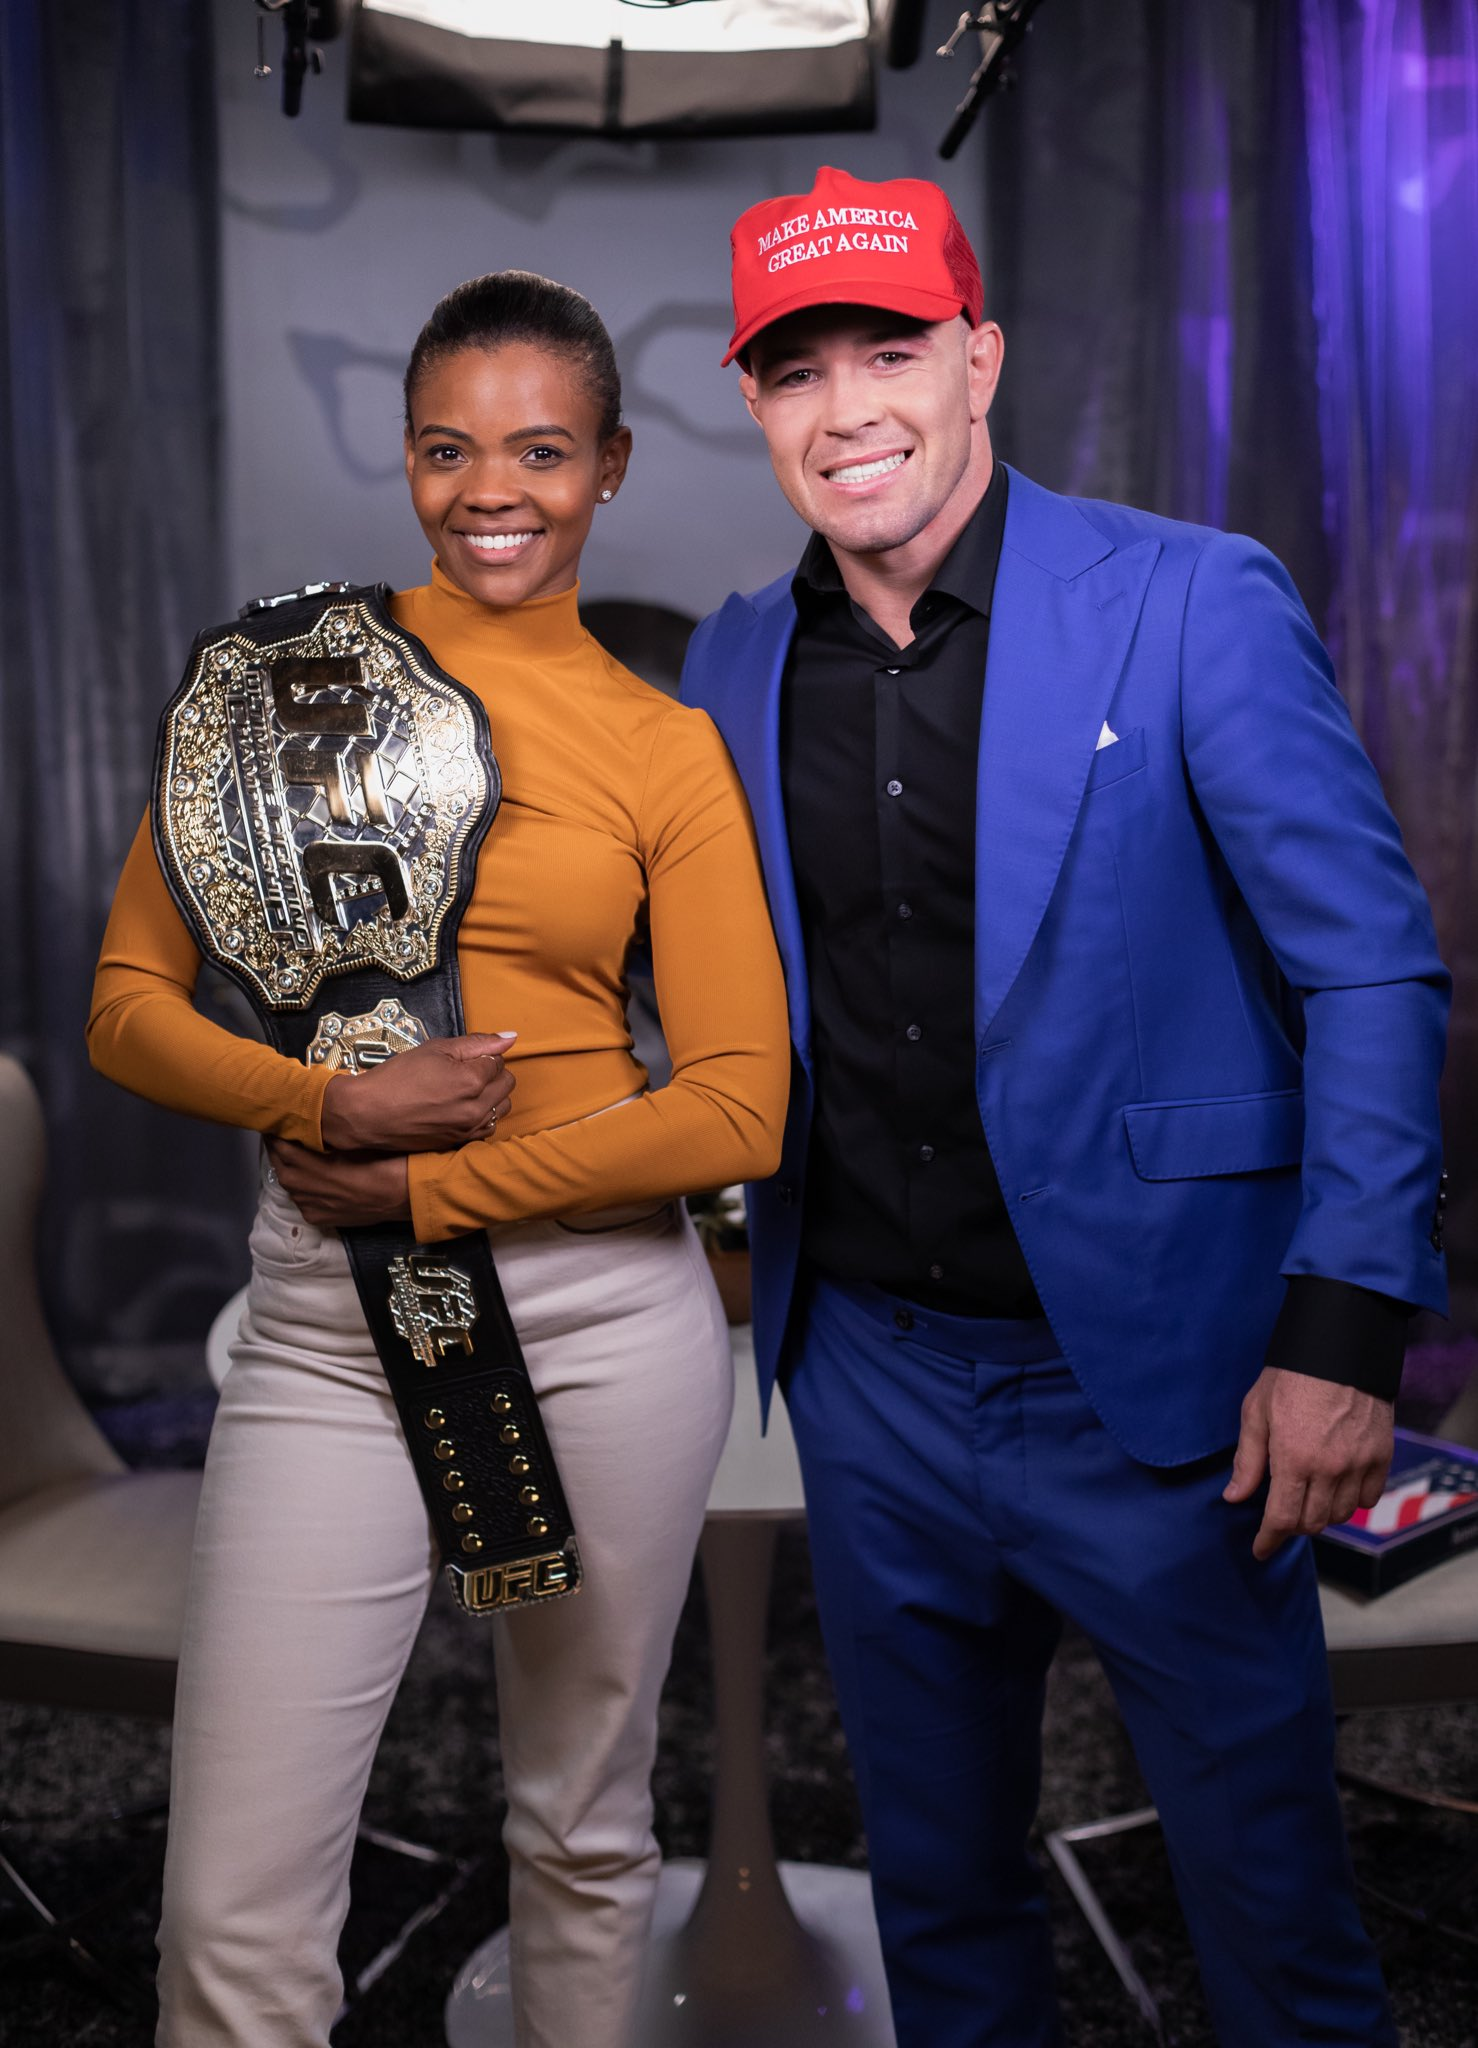 Colby Covington On Twitter Realcandaceowens Is The Ultimate Fact Champion Facts Don T Care About Your Feelings I Will Always Stand For The Flag And I Will Always Stand By Fellow Patriots God